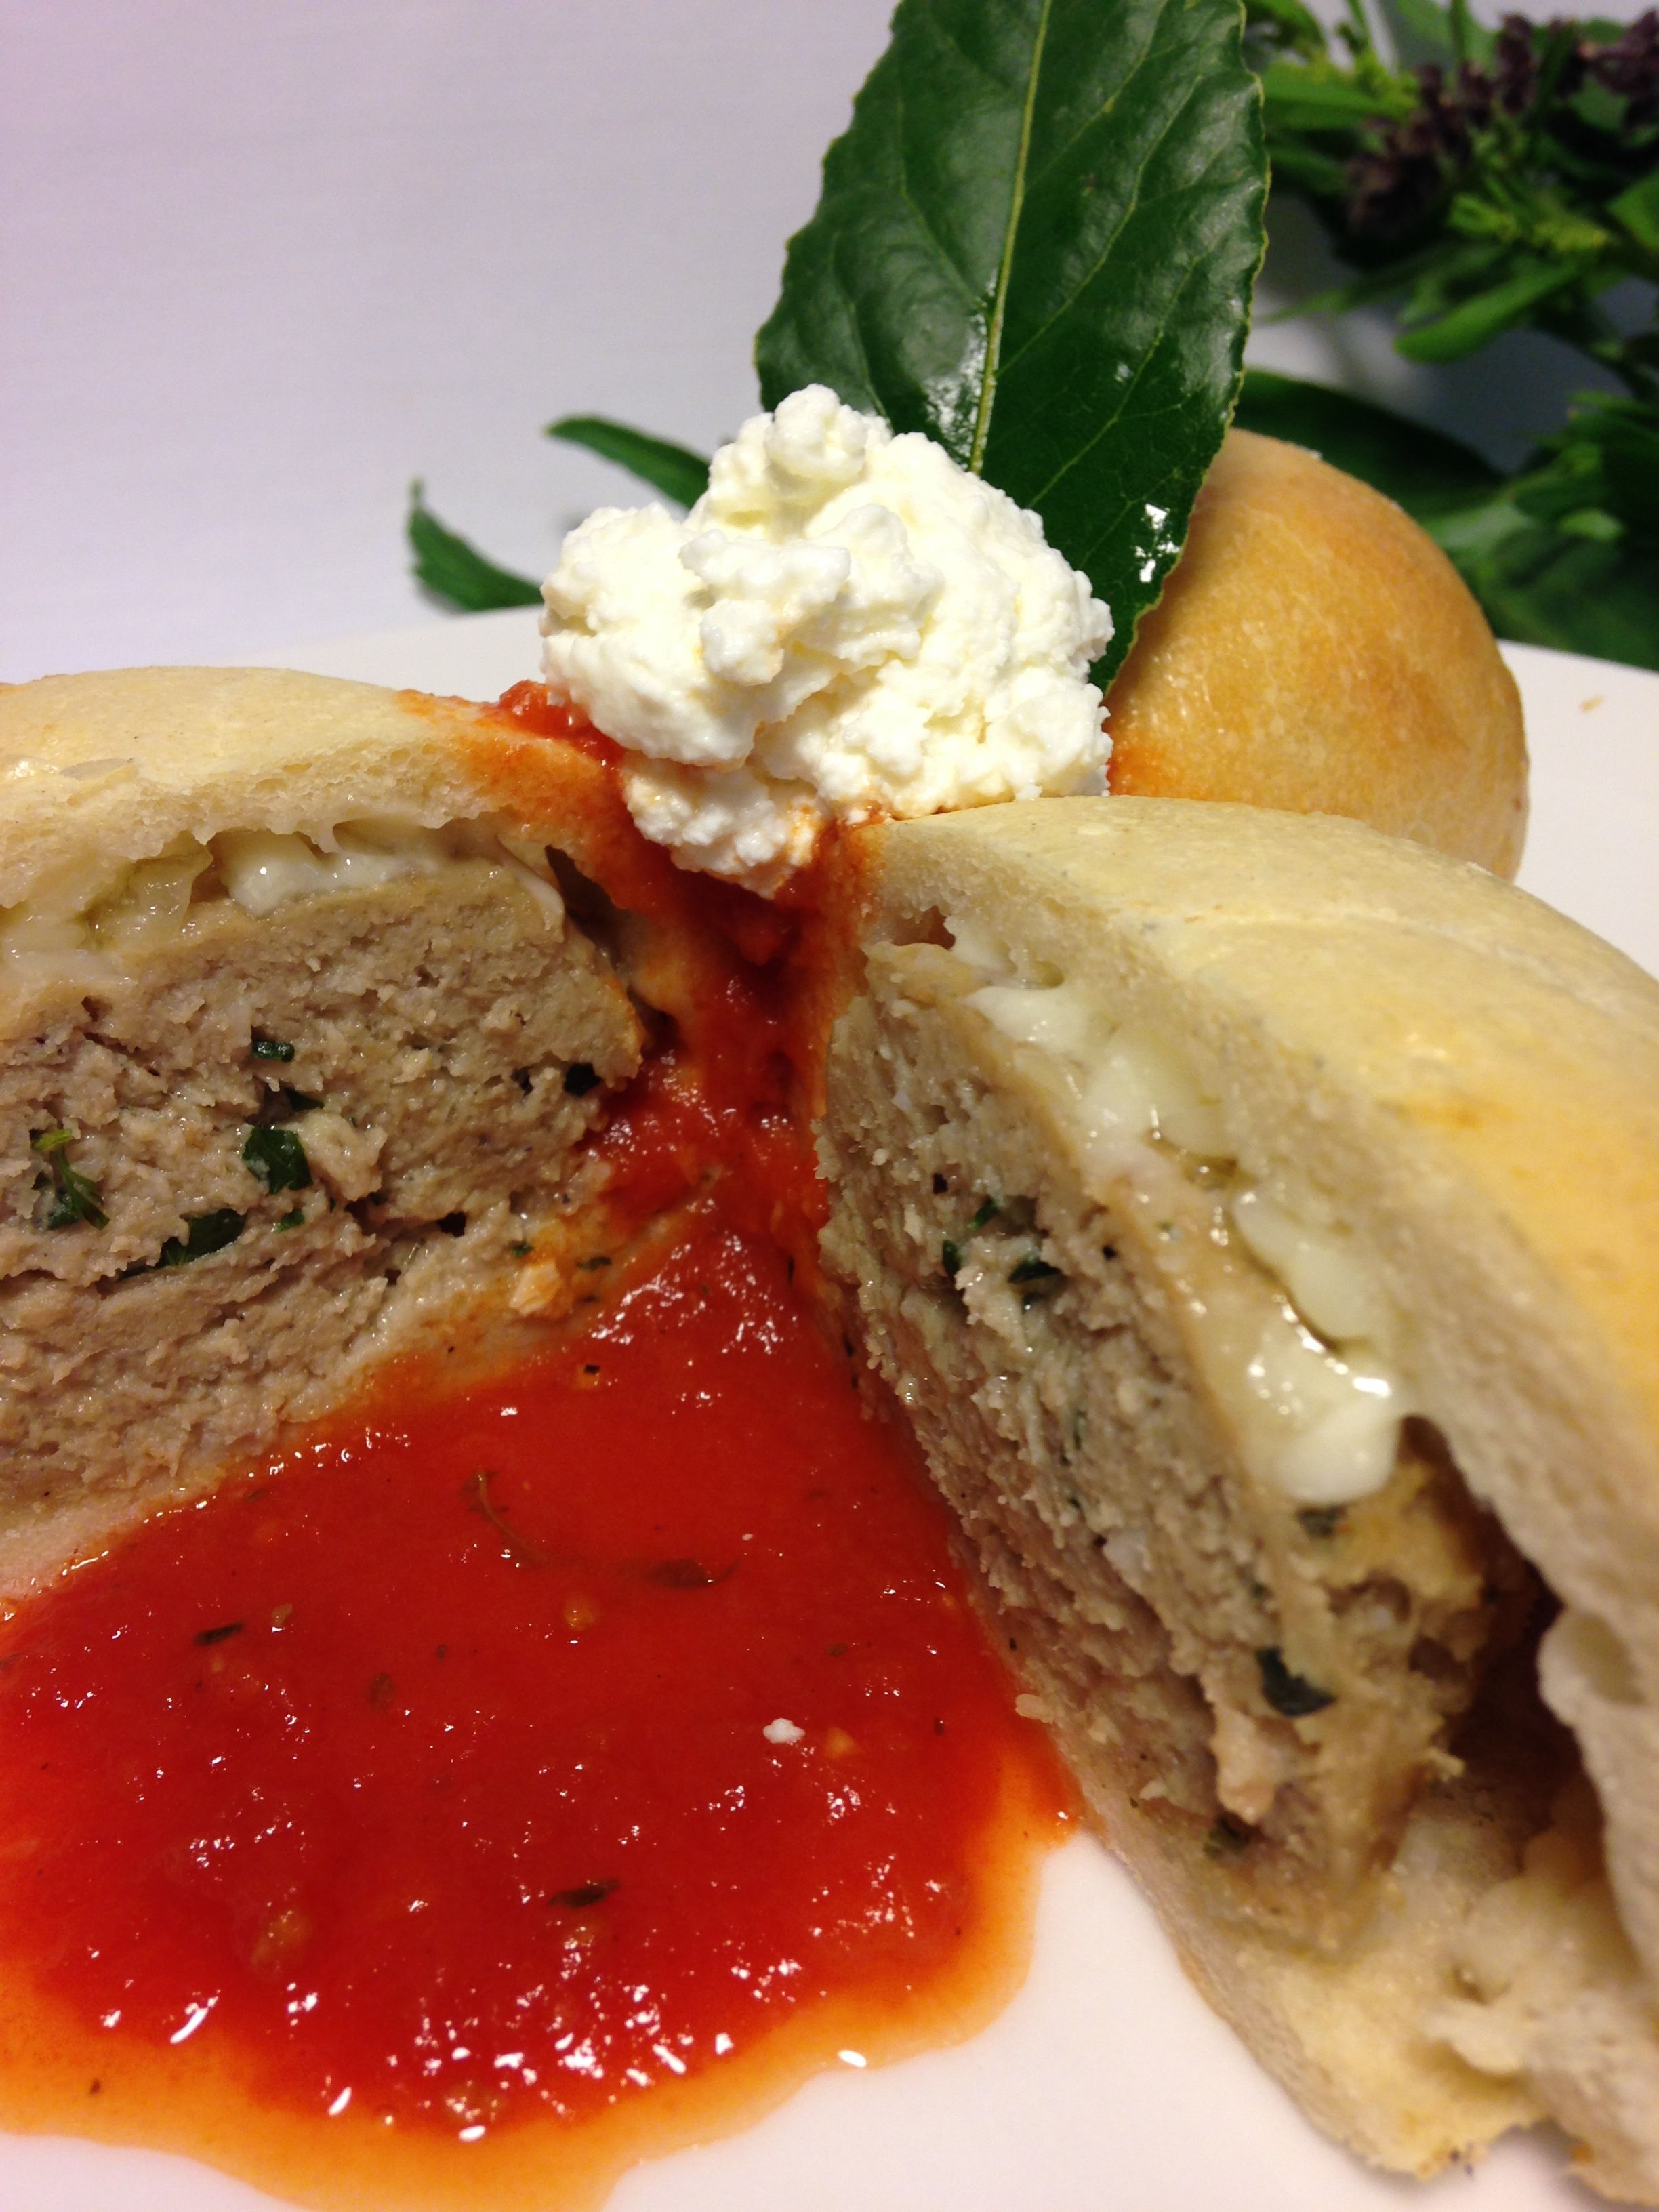 Beef Veal And Pork Meatballs In House Focaccia Bread Served With Marinara Sauce Narragansett Creamery Ricotta Cheese HotItalianBuns